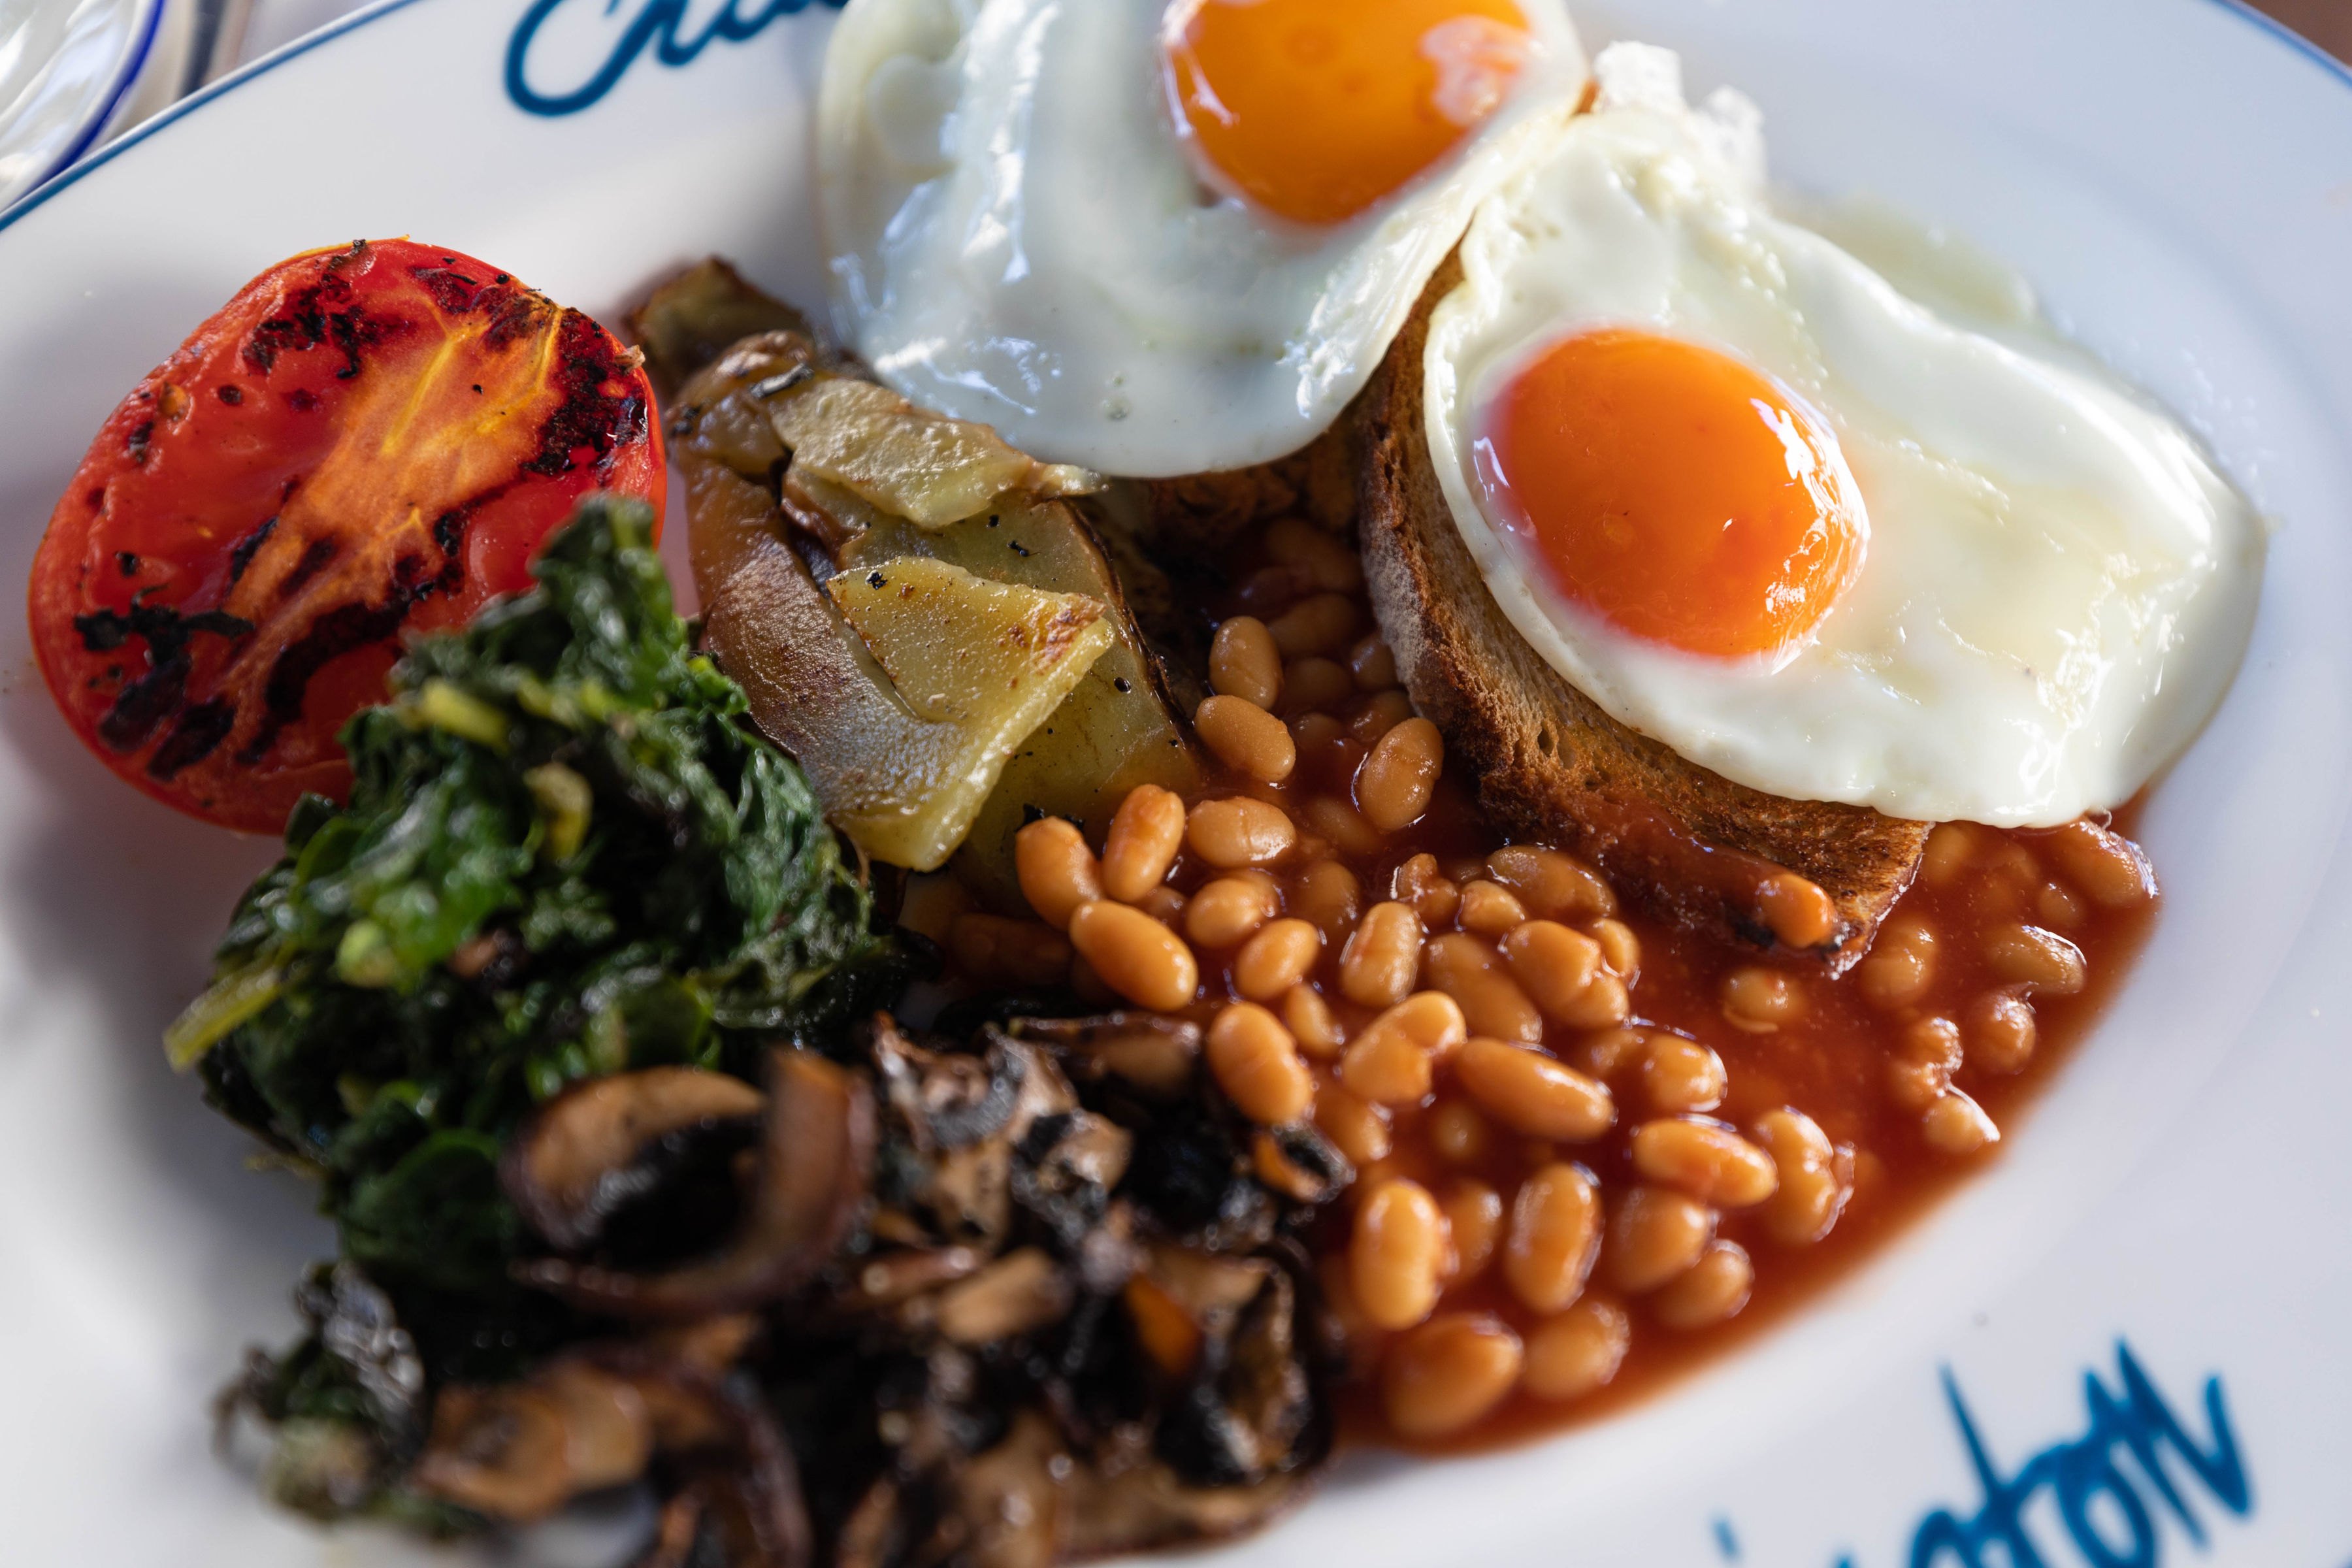 Chuc's Cafe Kensington London City Guide the Official Travel Guide of London, England